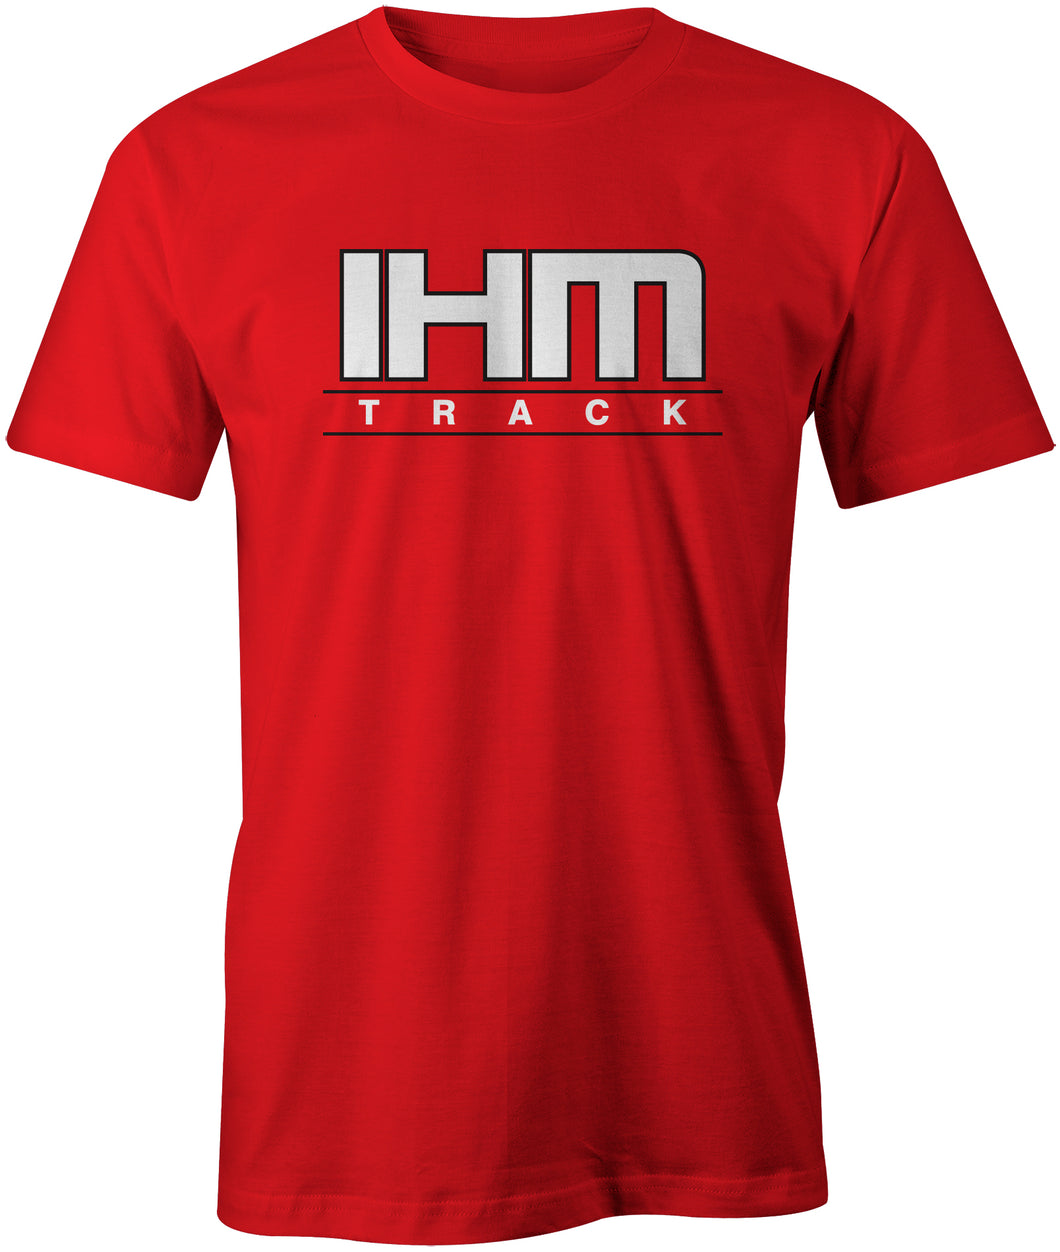 Red Track T-Shirt